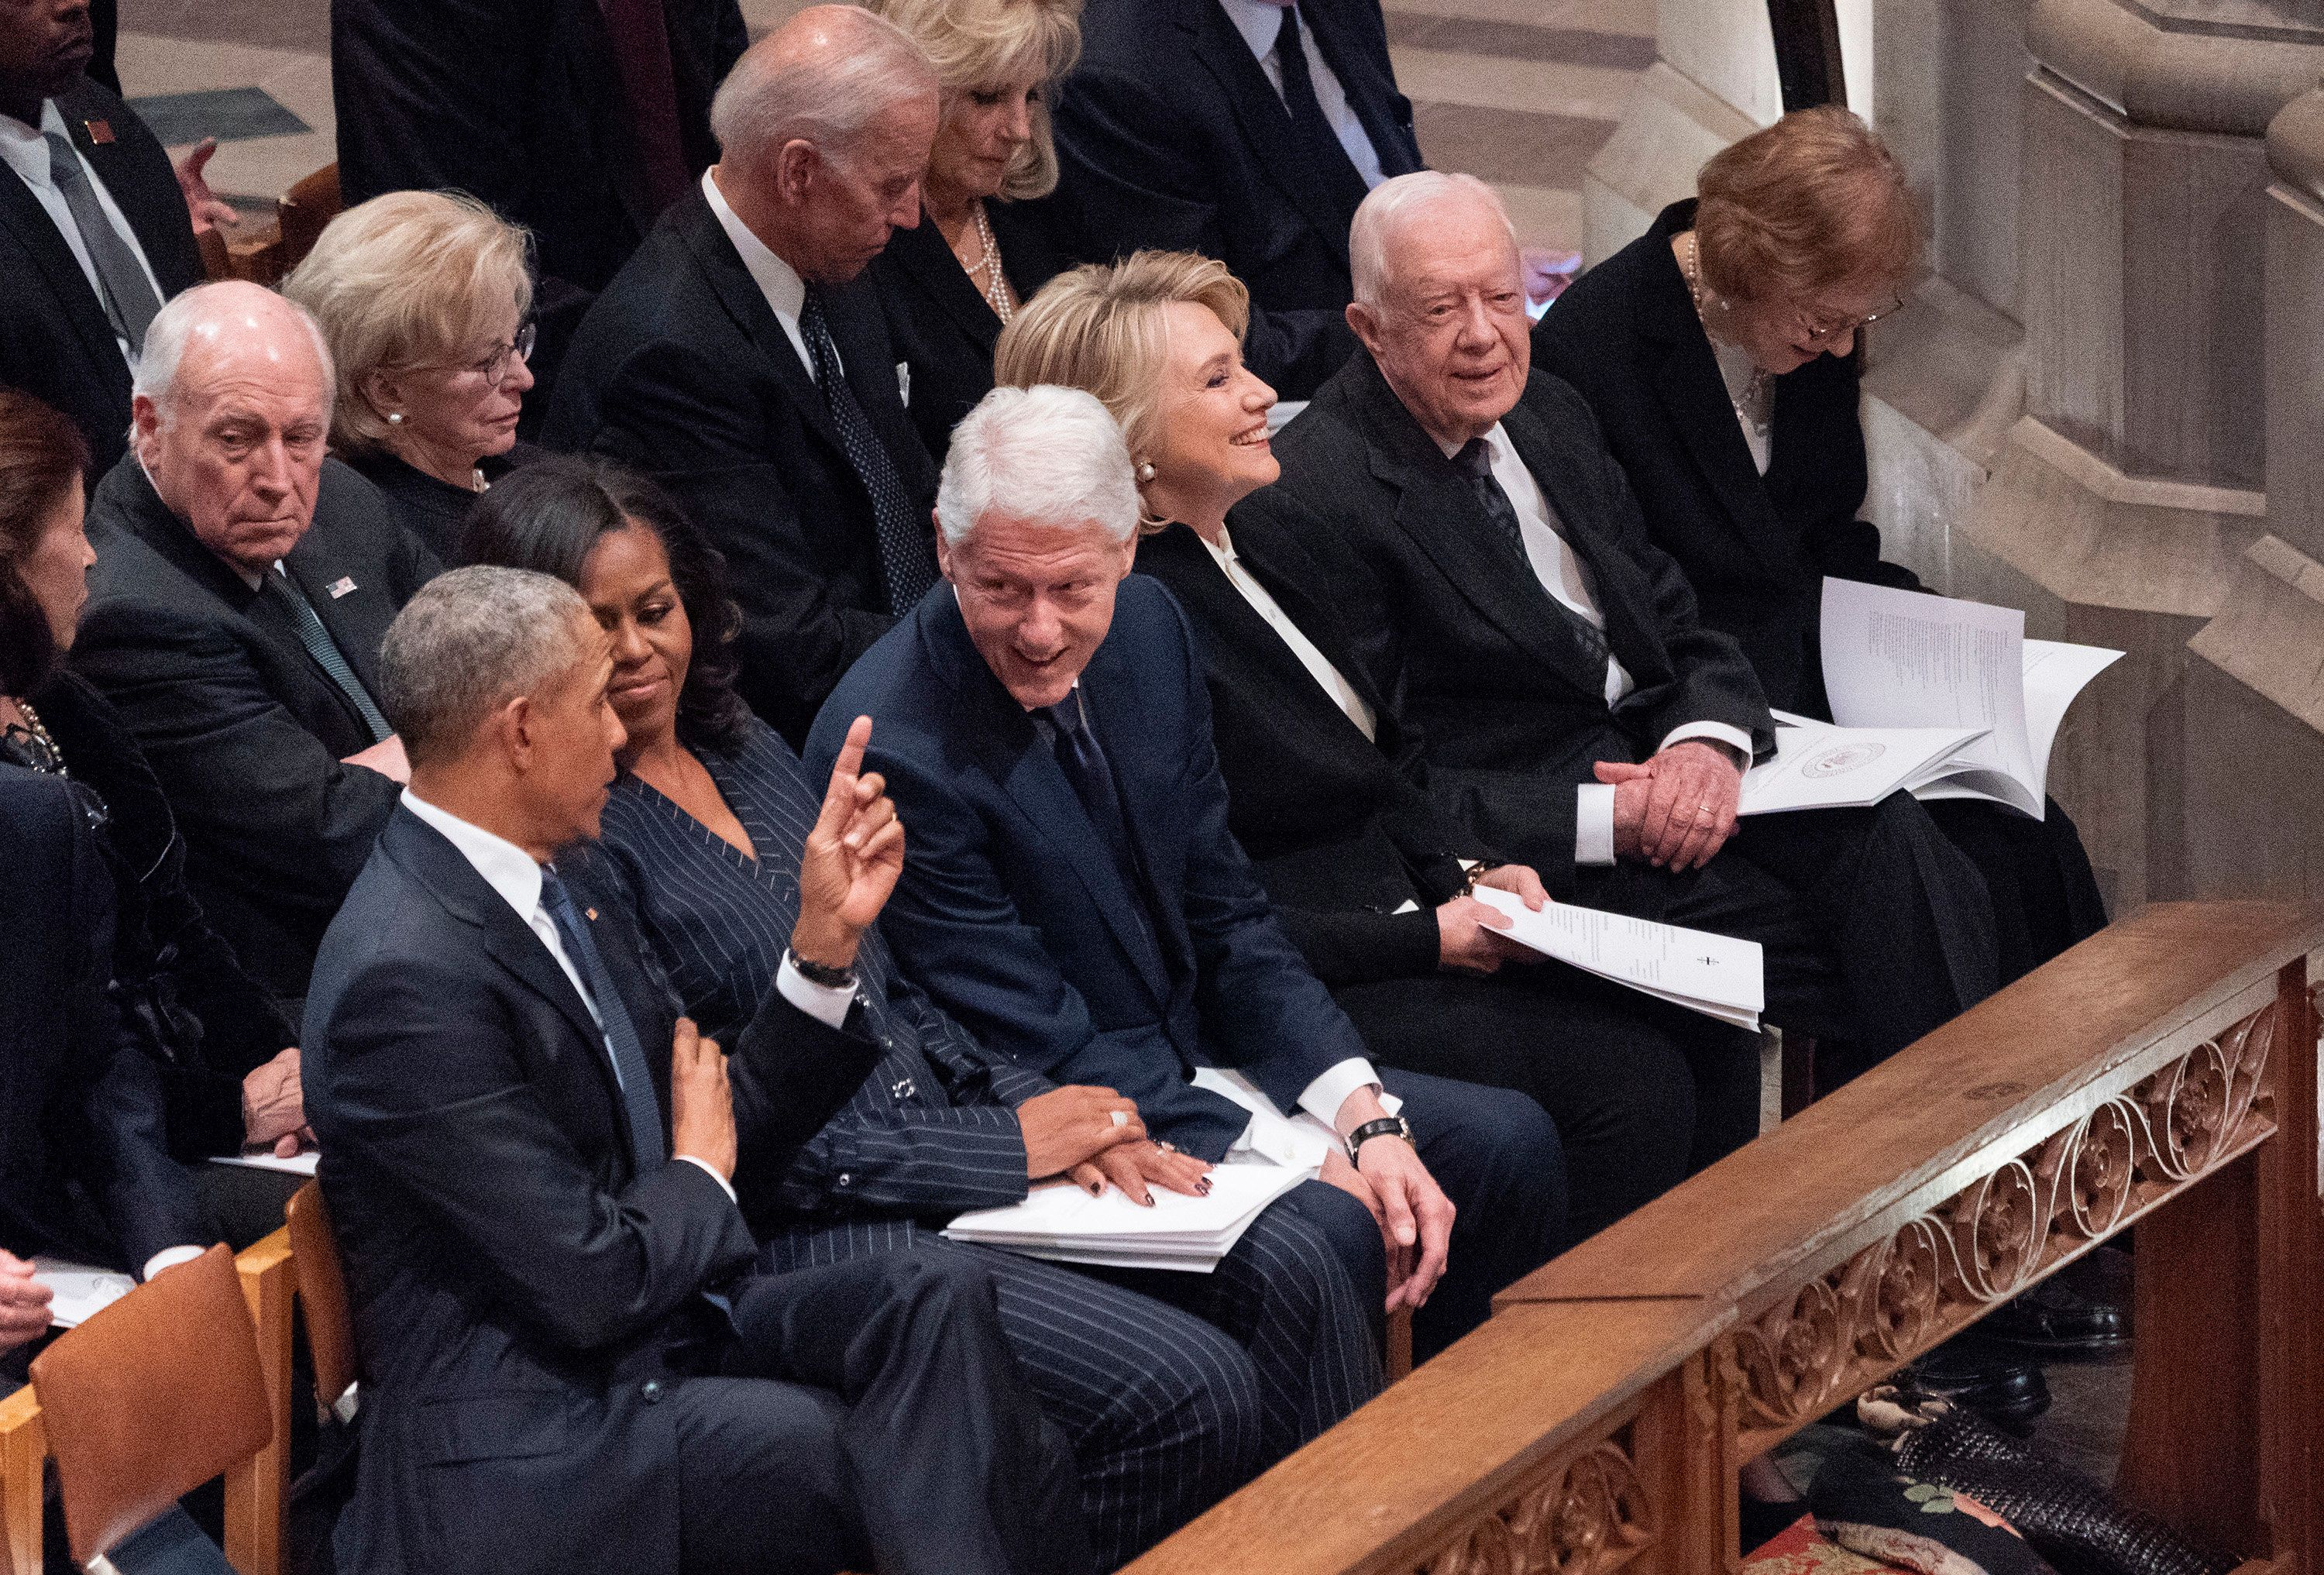 WASHINGTON, DC - DECEMBER 05: (AFP- OUT) Former President Barack Obama, Michelle Obama, Bill Clinton, Hillary Clinton, Jimmy Carter and Rosalyn Carter attend the state funeral service of former President George W. Bush at the National Cathedral, December 5, 2018 in Washington, DC. President Bush will be buried at his final resting place at the George H.W. Bush Presidential Library at Texas A&M University in College Station, Texas. A WWII combat veteran, Bush served as a member of Congress from Texas, ambassador to the United Nations, director of the CIA, vice president and 41st president of the United States. (Photo by Chris Kleponis-Pool/Getty Images)